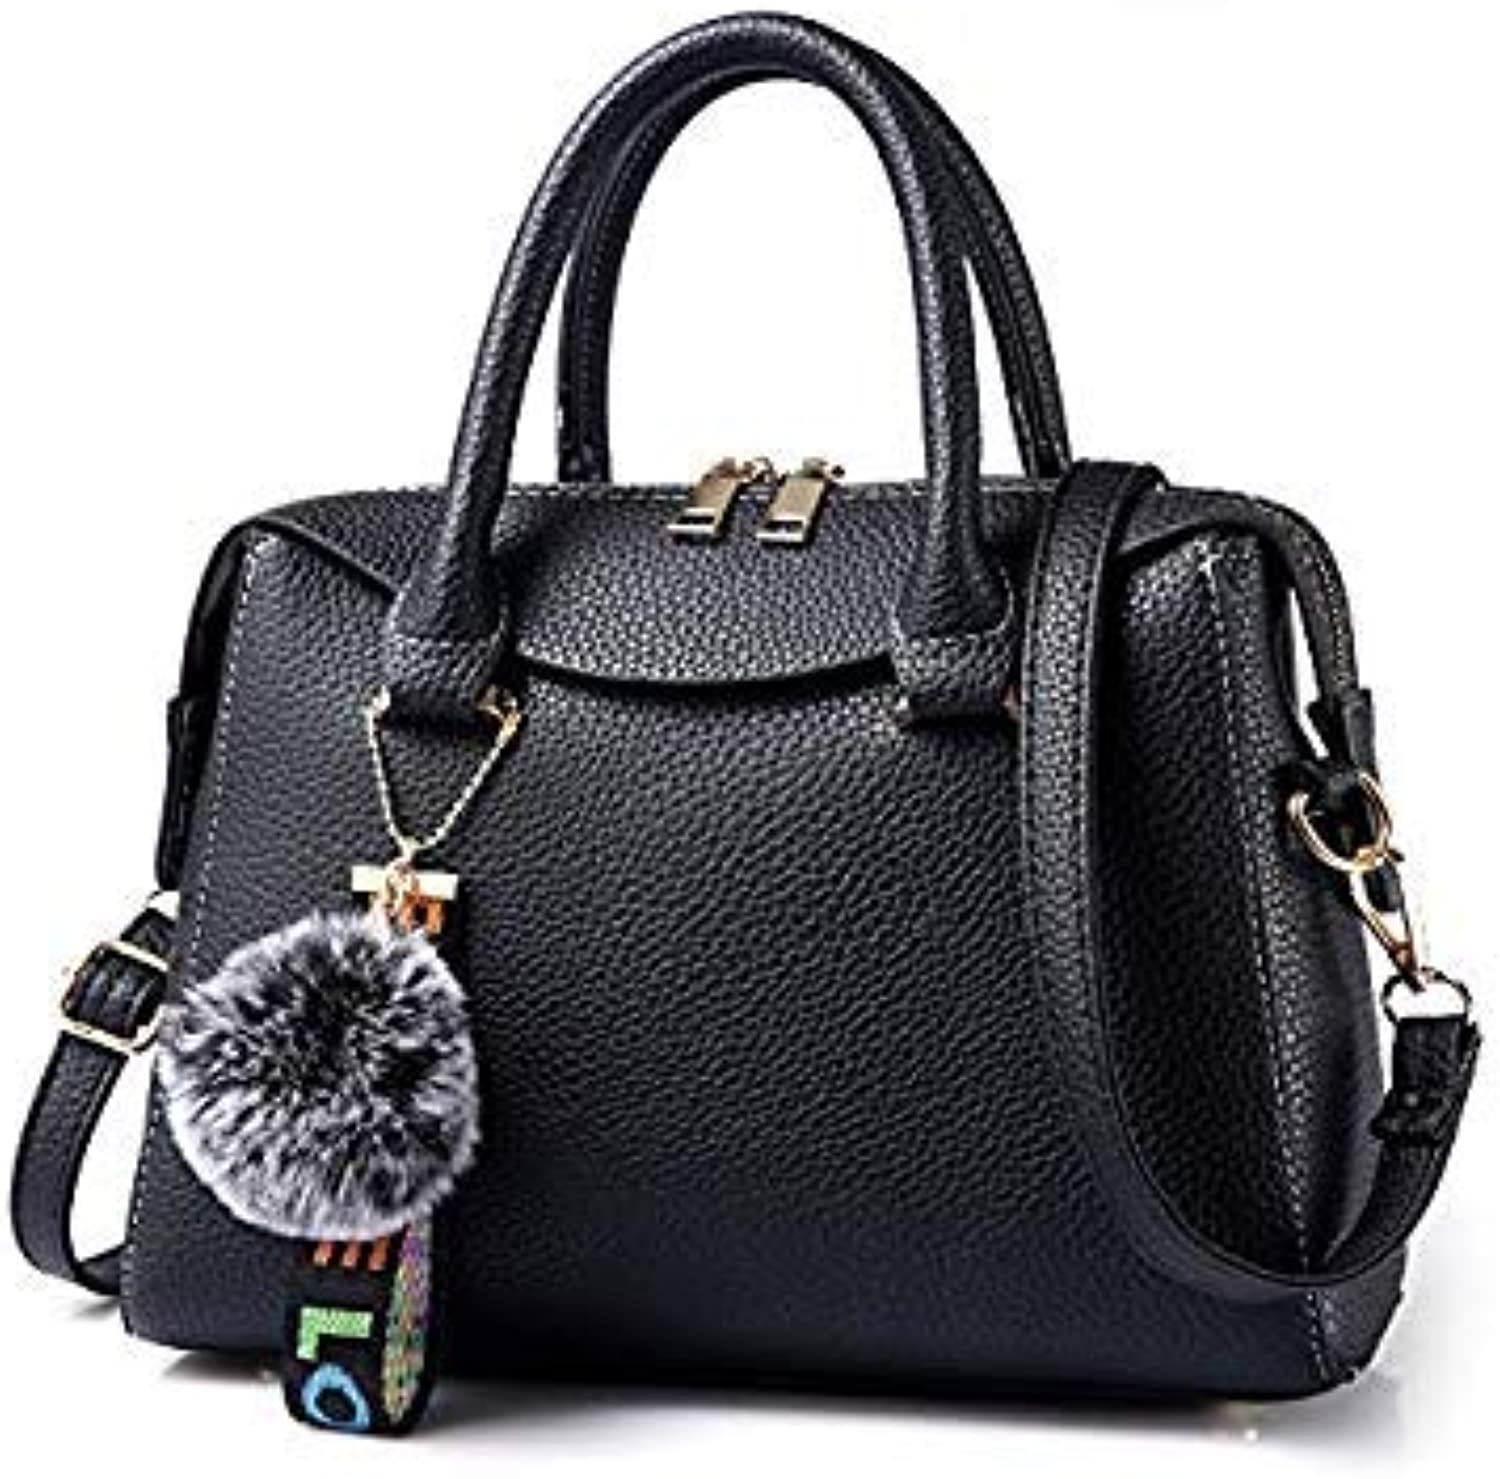 Bloomerang MONNET CAUTHY Female Totes Concise Fashion Occident Style Elegant Office Ladies Handbags Solid color Green Red Pink Black Boston color Black Handbags